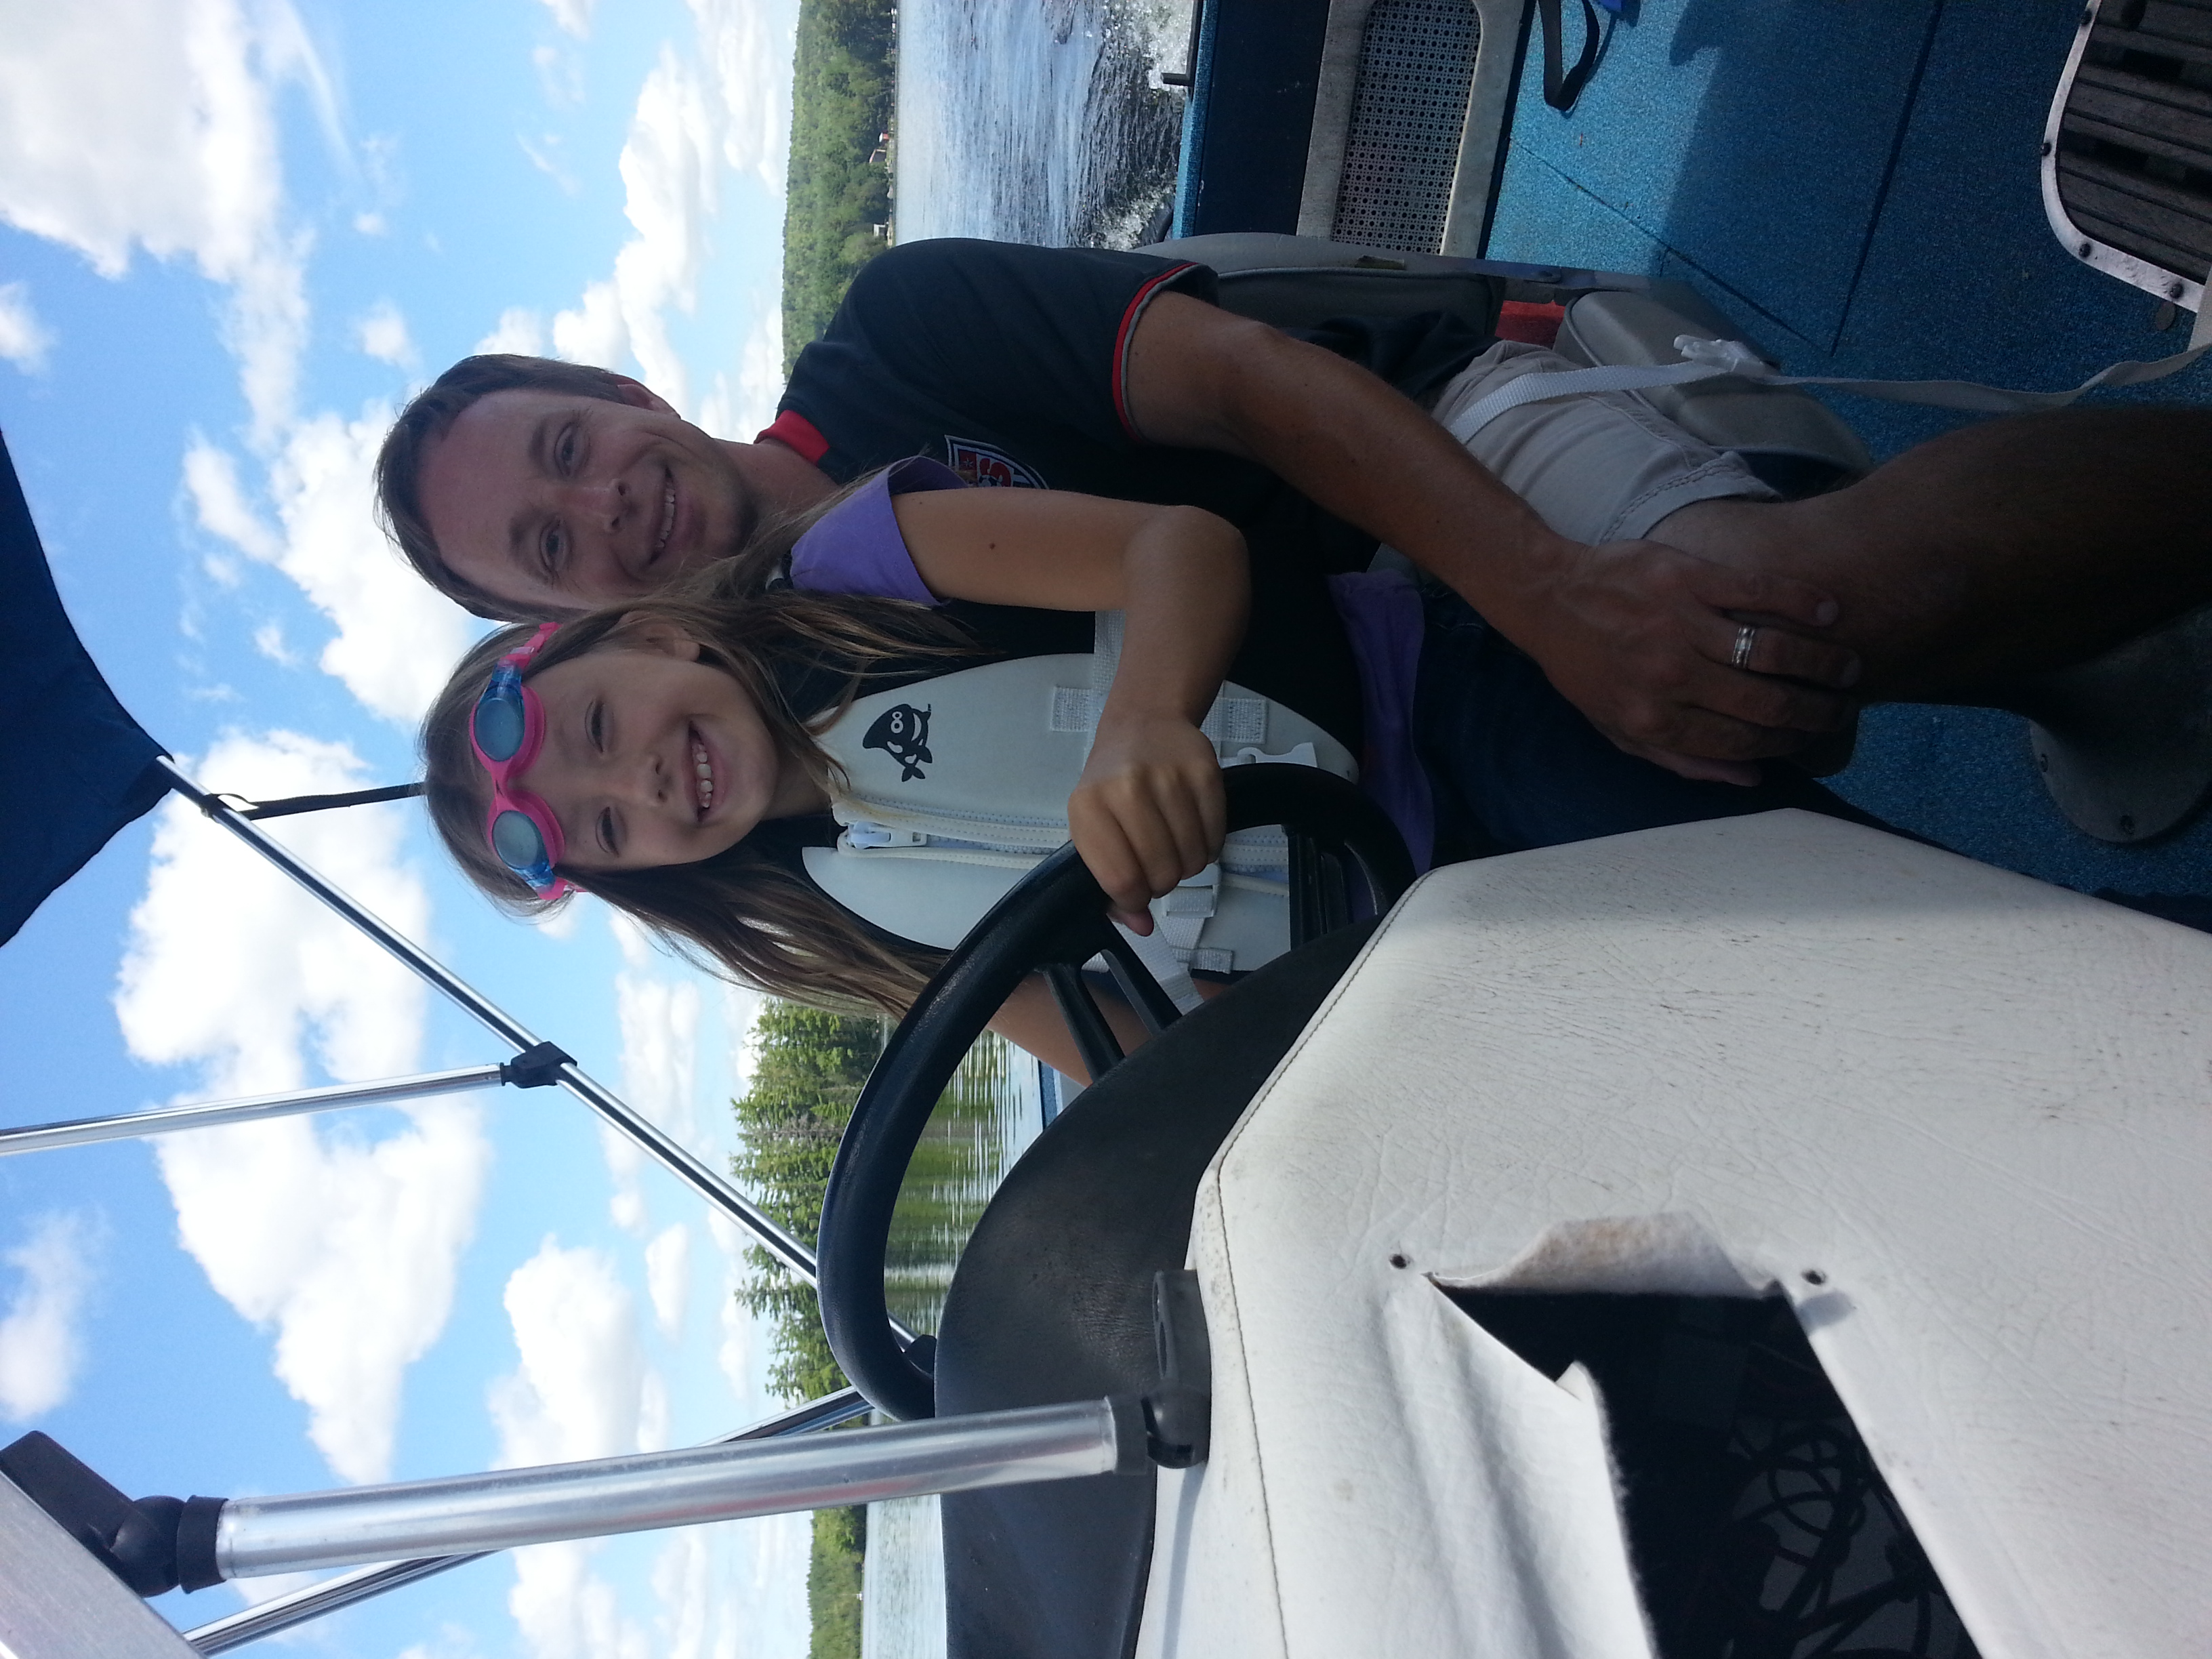 For this journey, we didn't even leave our lake, just went to another part of it. Petunia did a great job as captain.